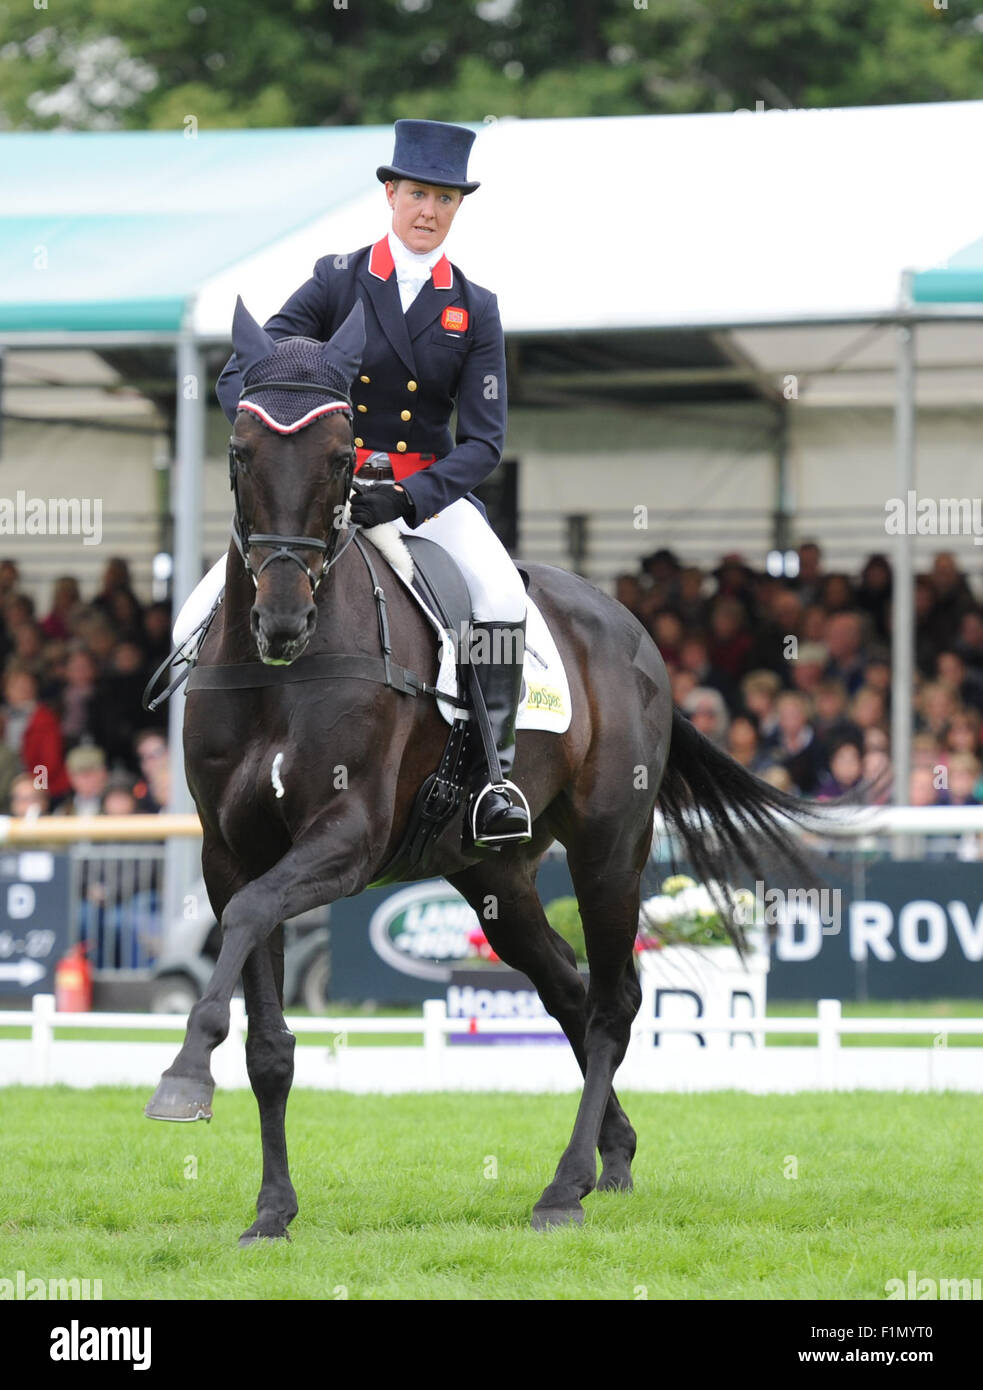 Stamford, UK. 4th September, 2015. Land Rover Burghley Horse Trials 2015, Stamford England. Nicola Wilson (GBR) Stock Photo